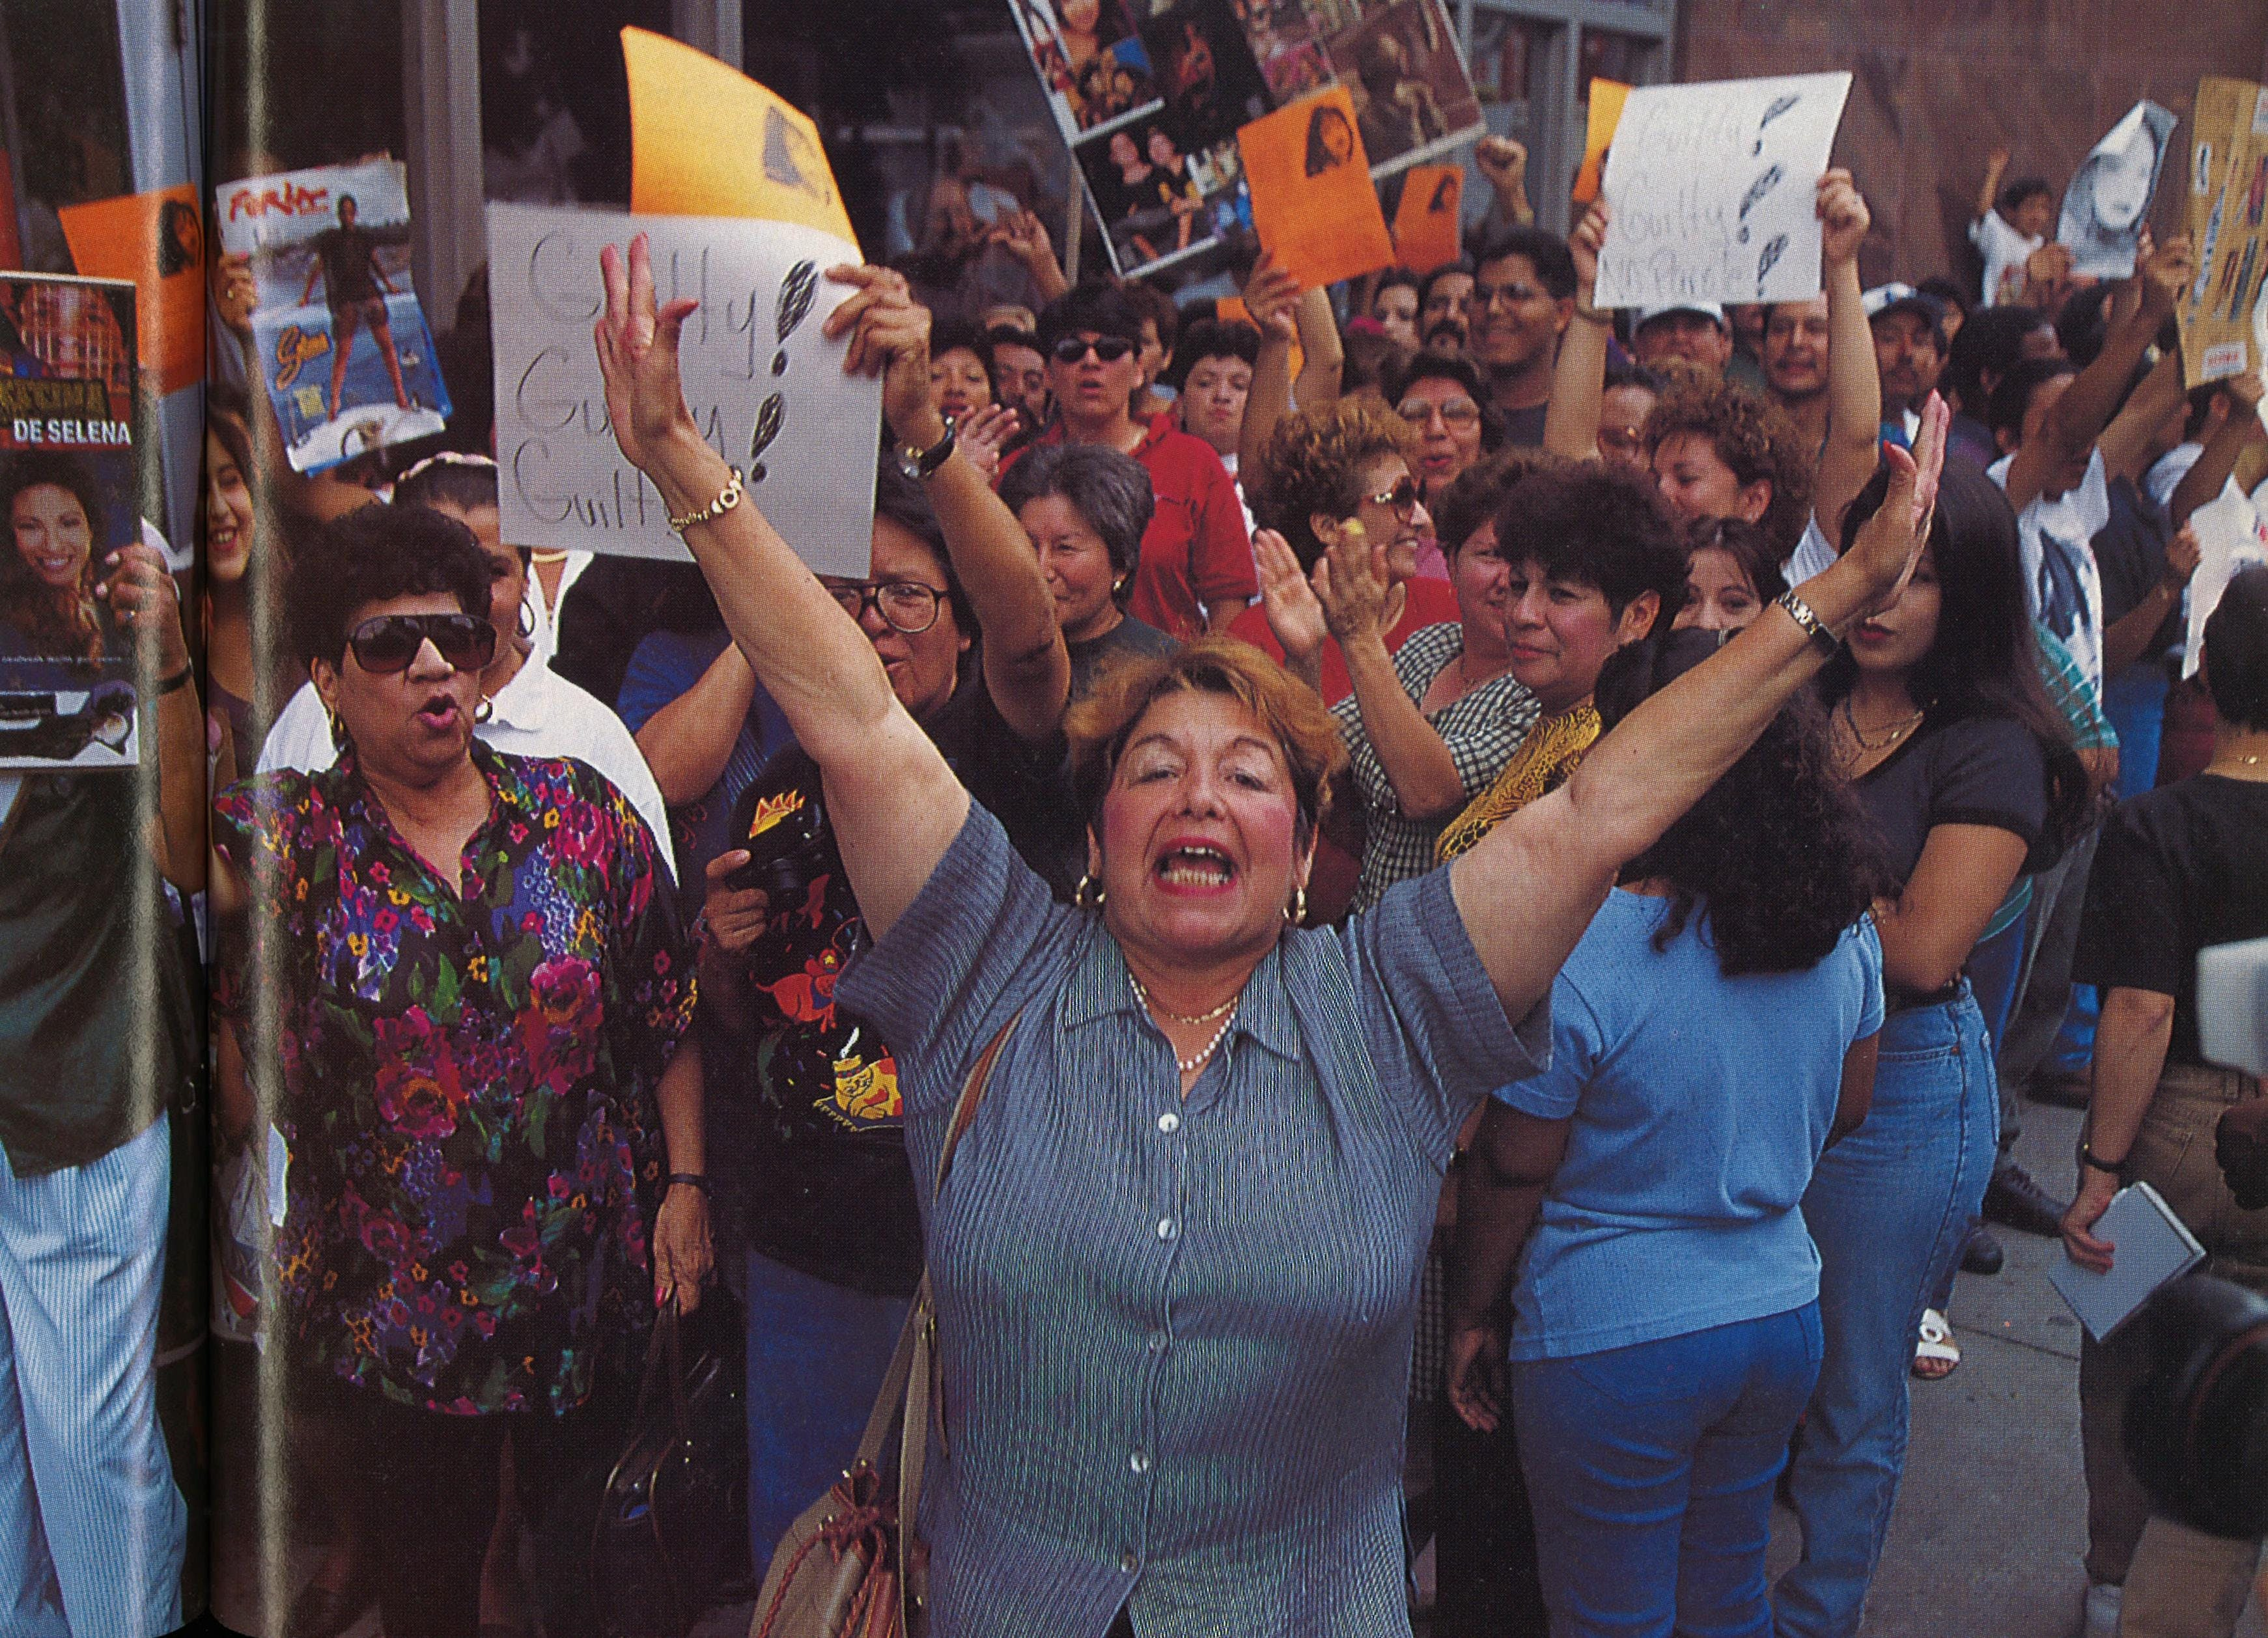 After the jury reached its verdict, hundreds of Selena's fans filled the streets around the Houston courthouse and celebrated the news.